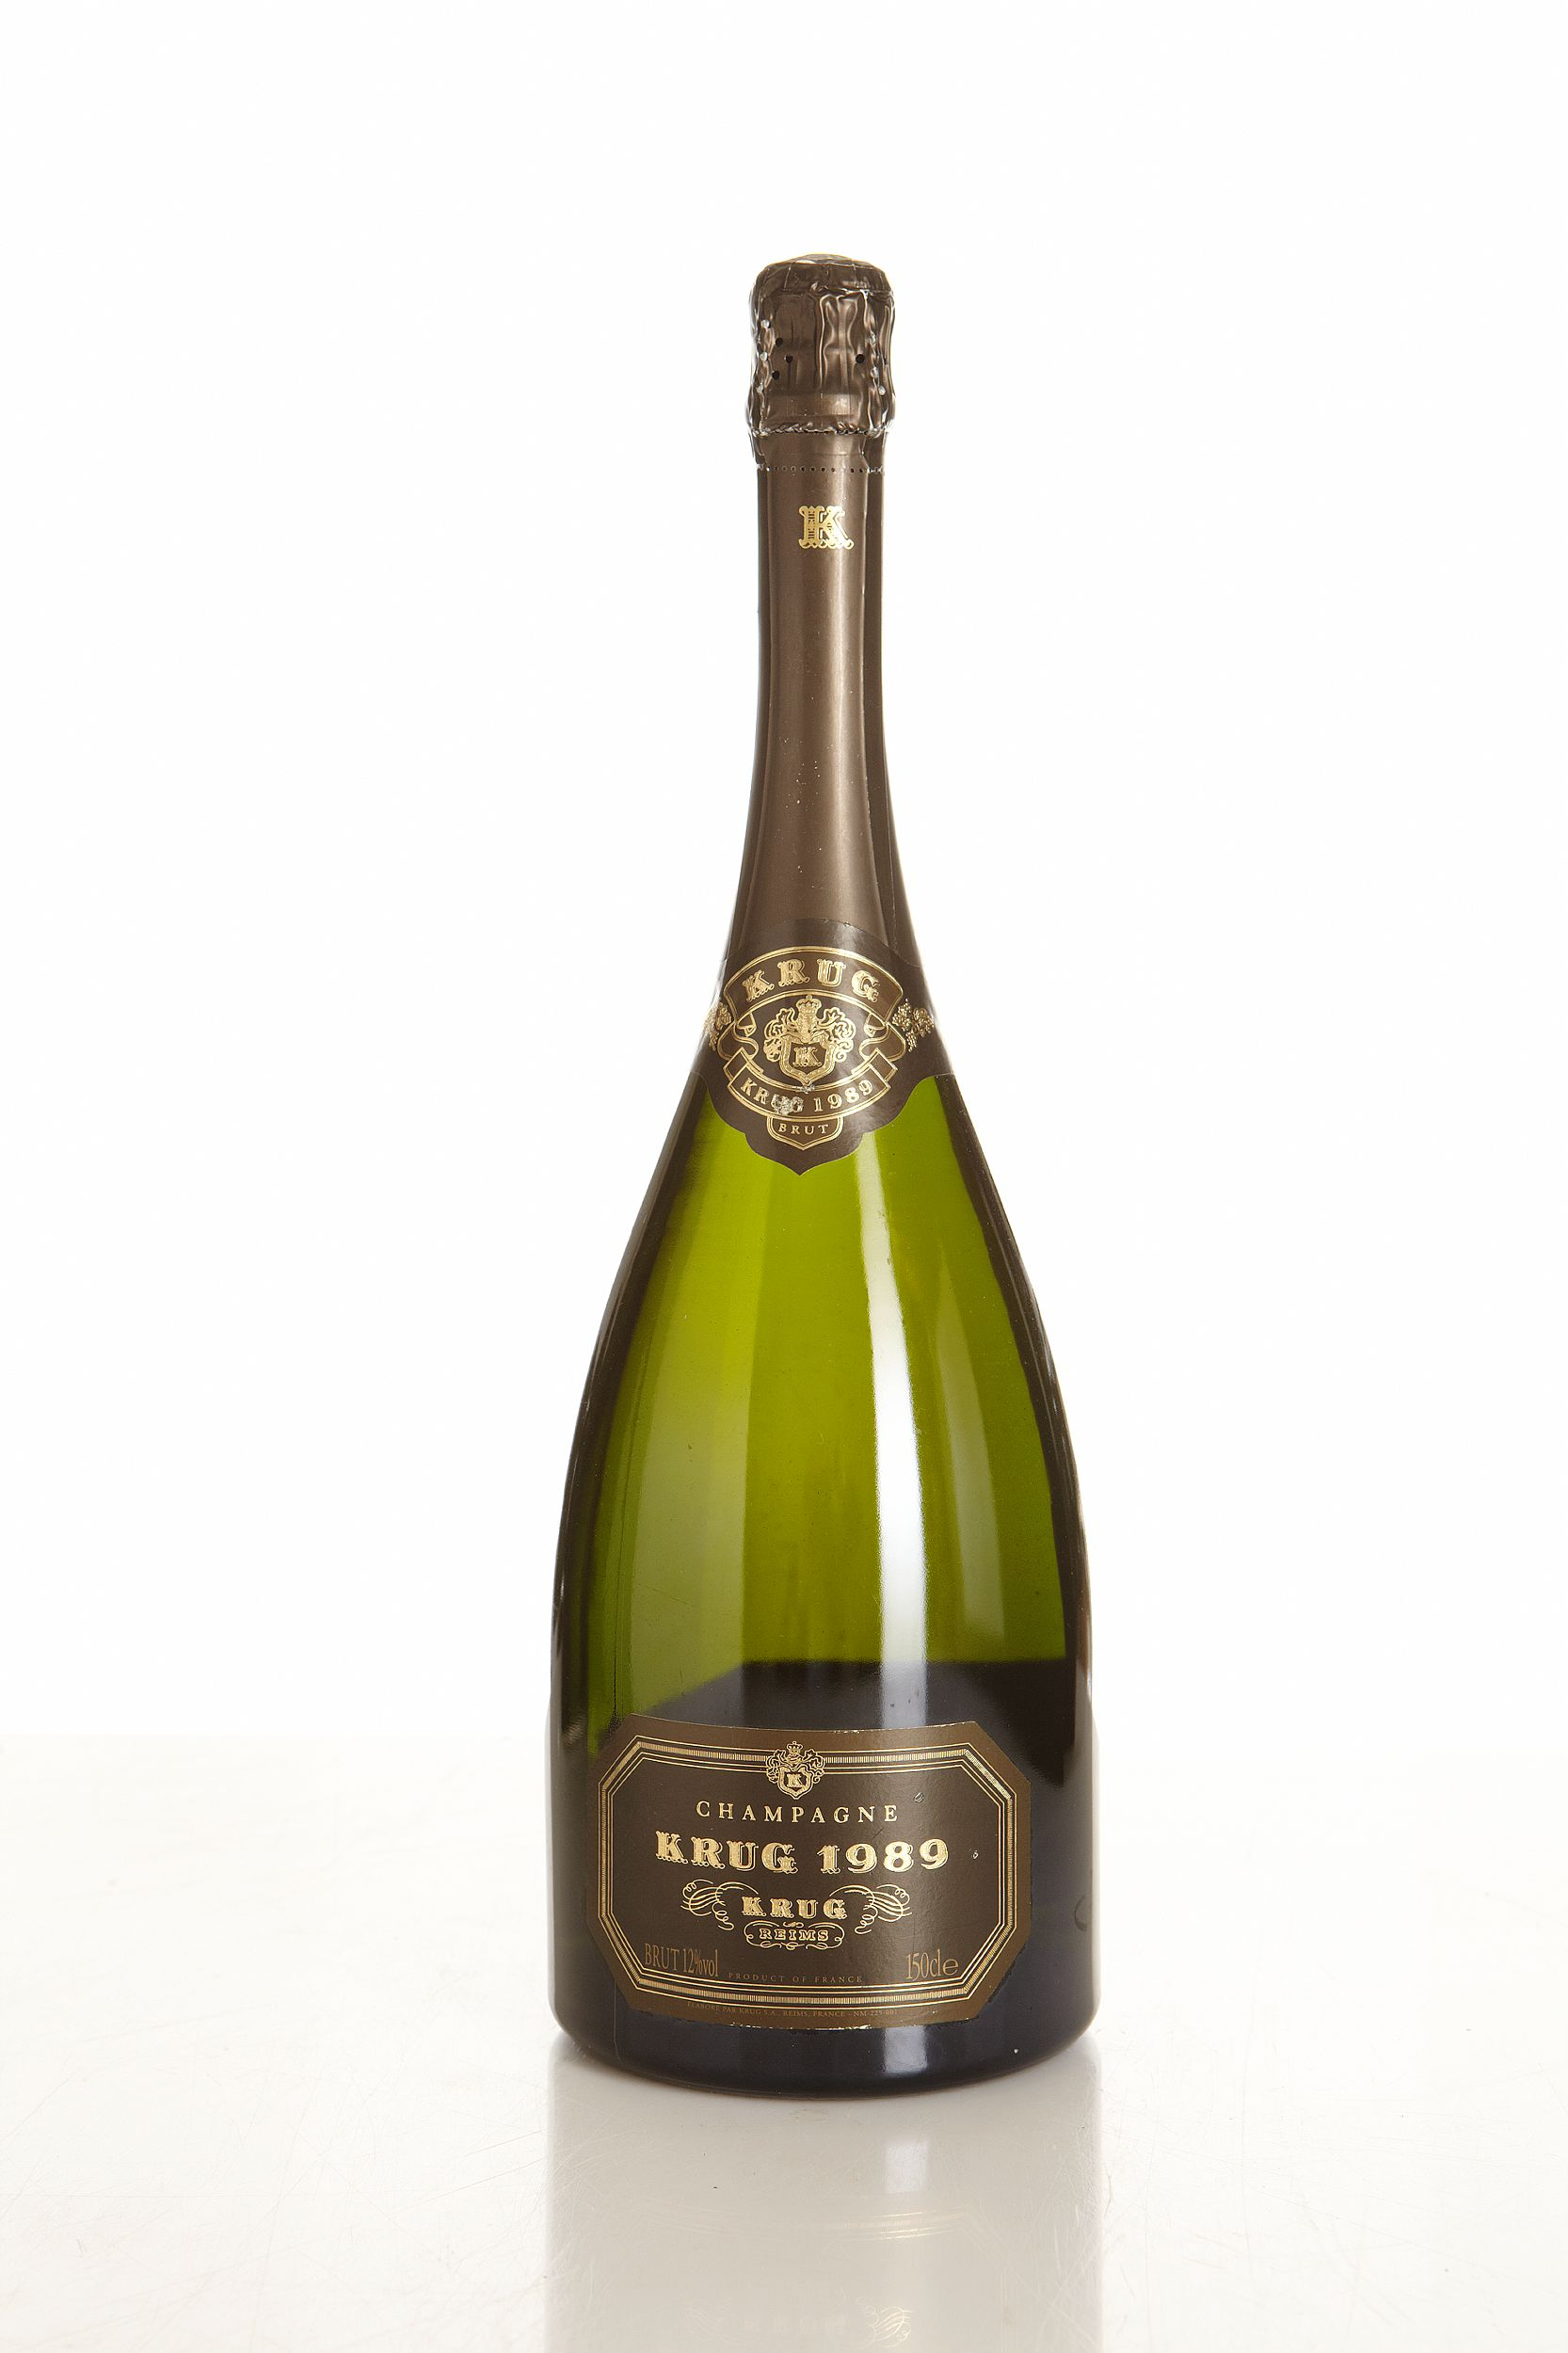 Krug 1989, Krug, Champagne, Stored in private